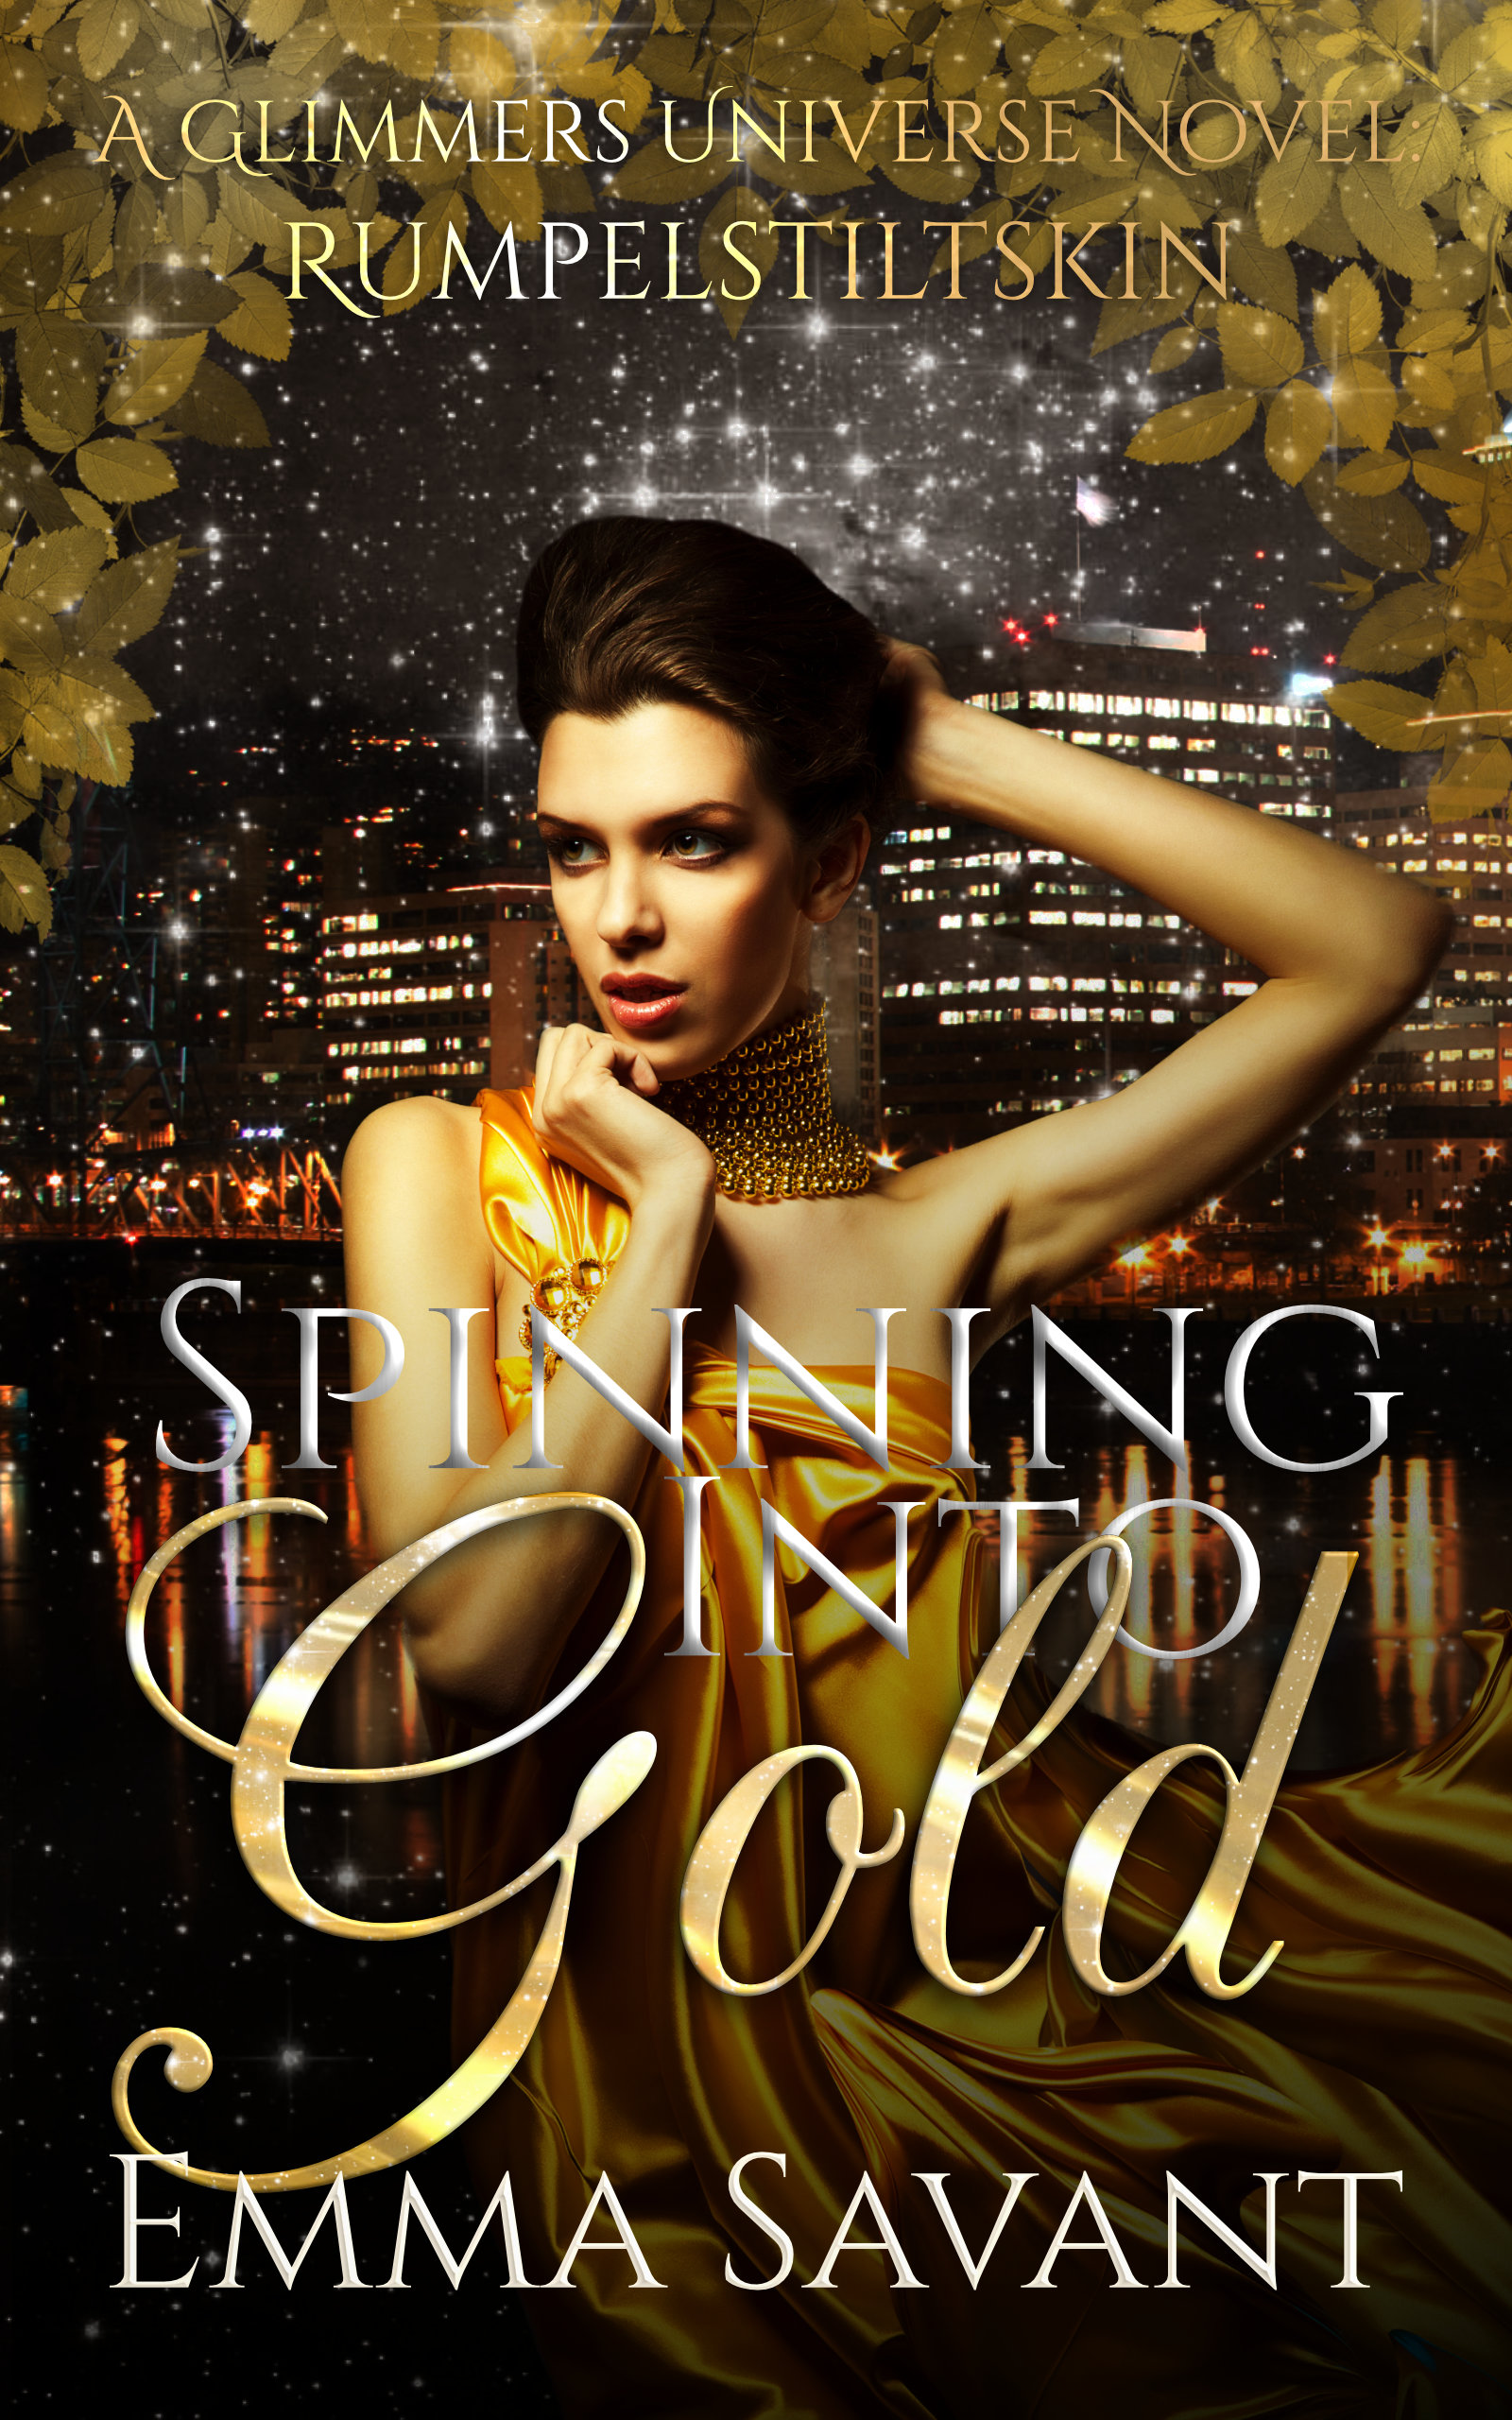 Spinning Into Gold by Emma Savant